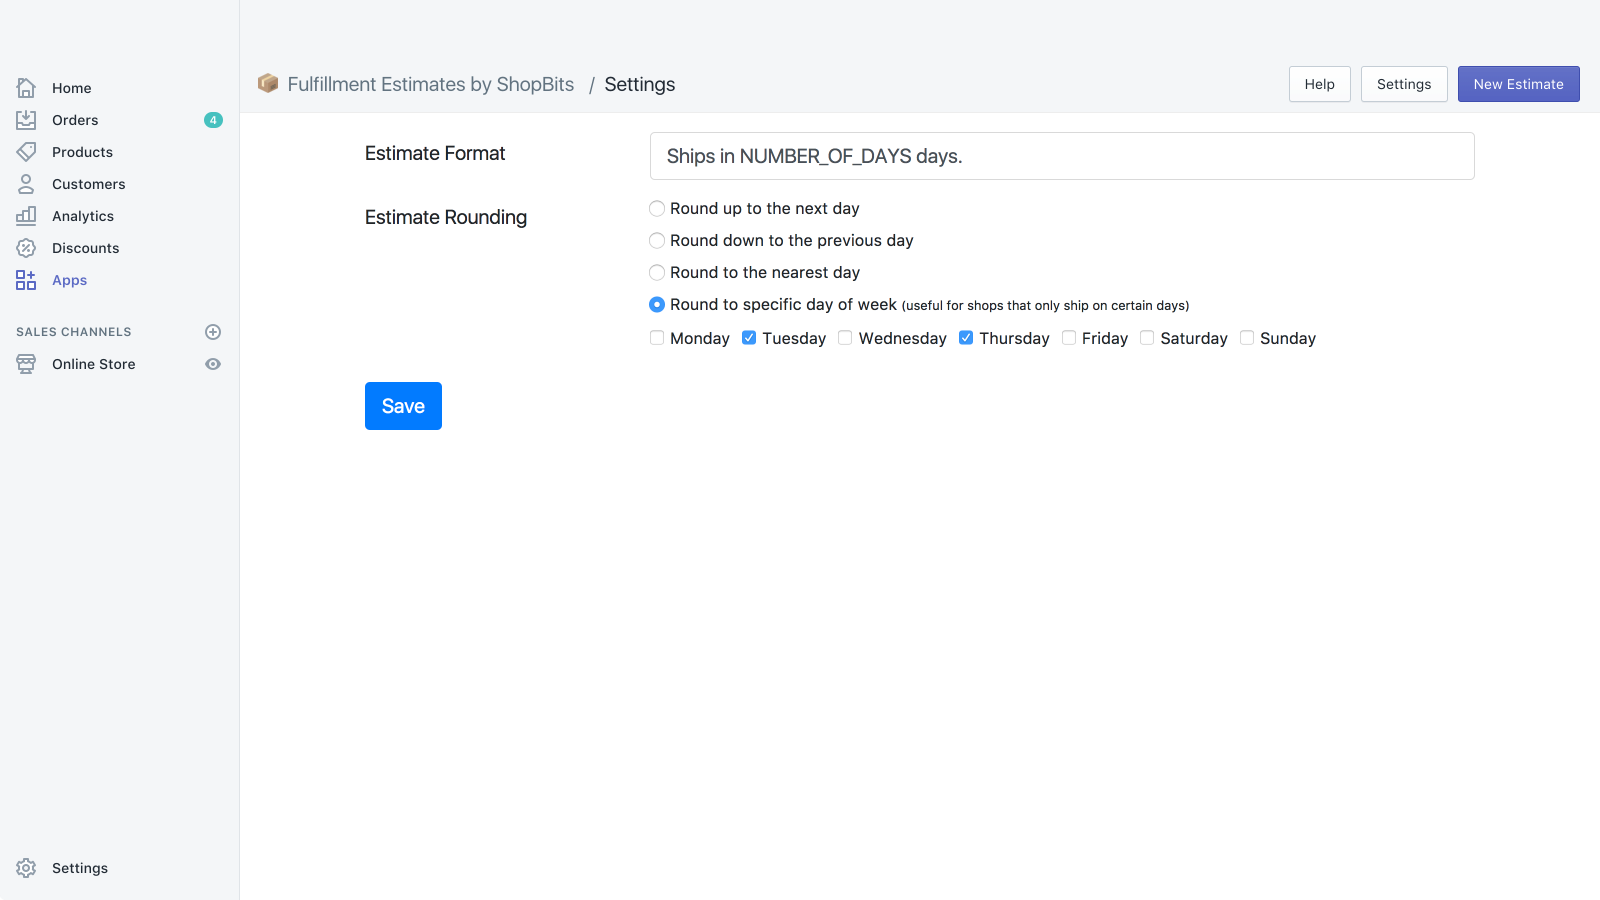 Easily customize how your estimates are calculated and displayed